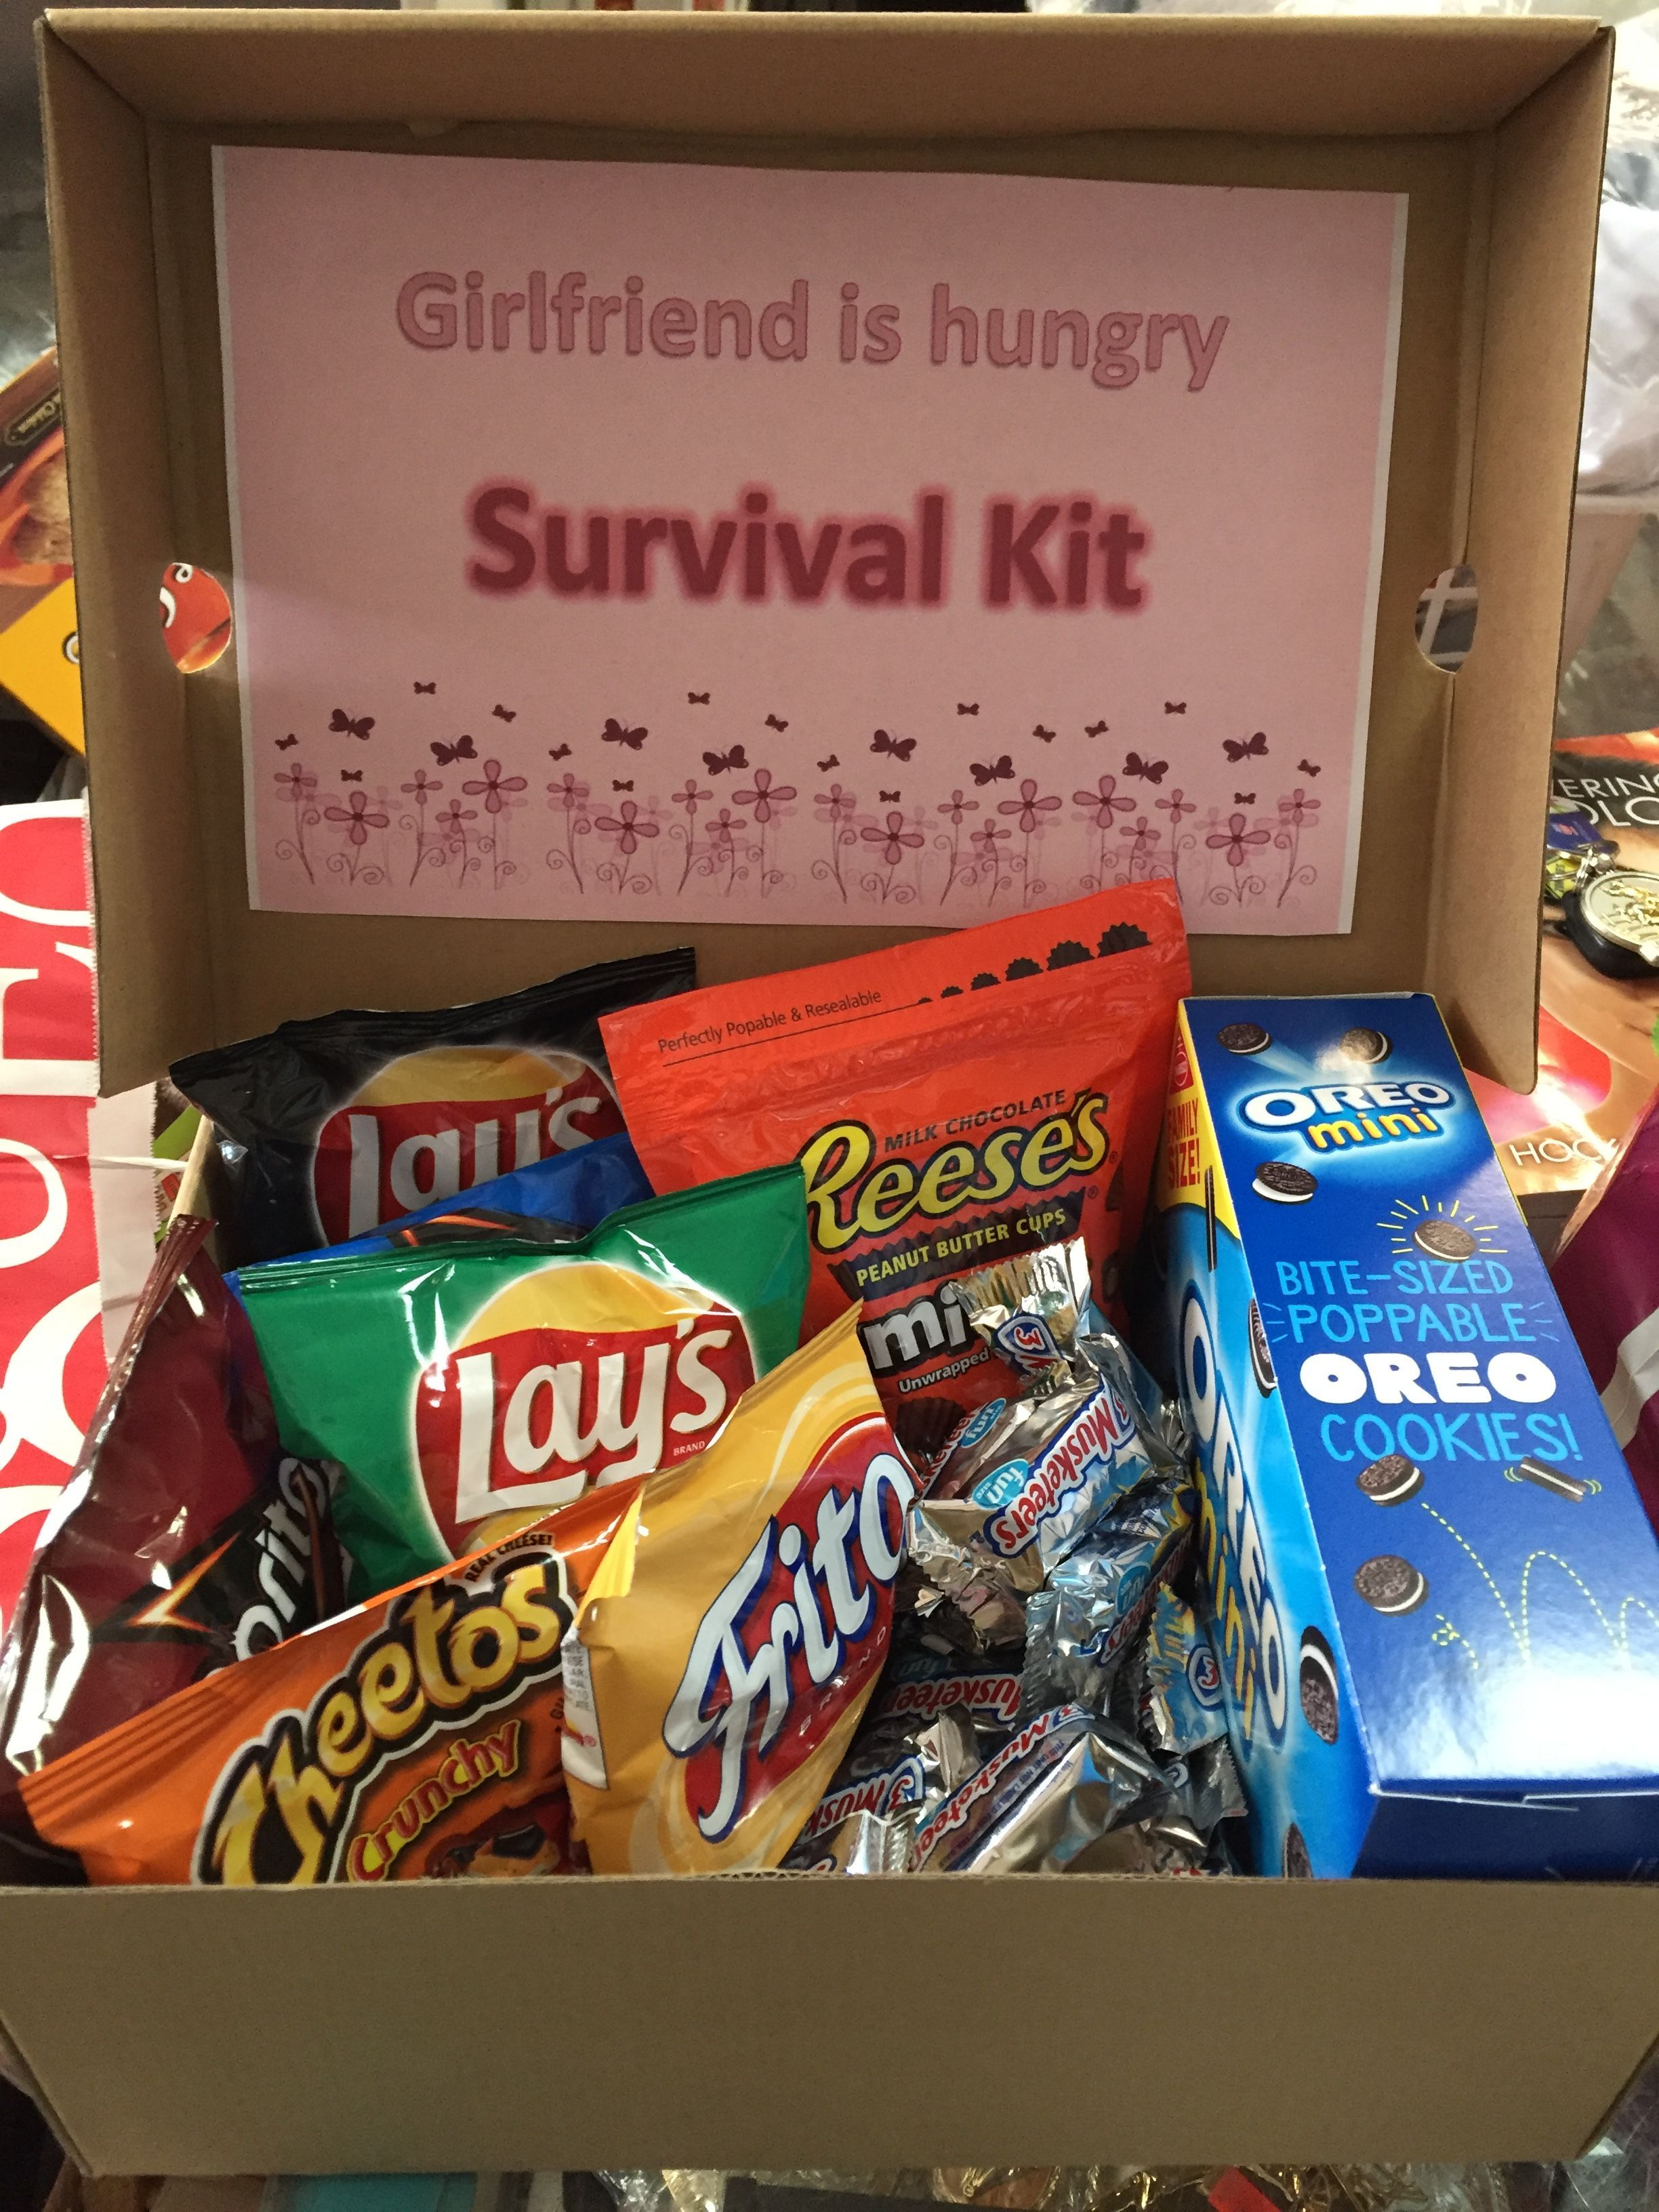 Pin By Kendall E On Survival Kits Birthday Gifts For Girlfriend